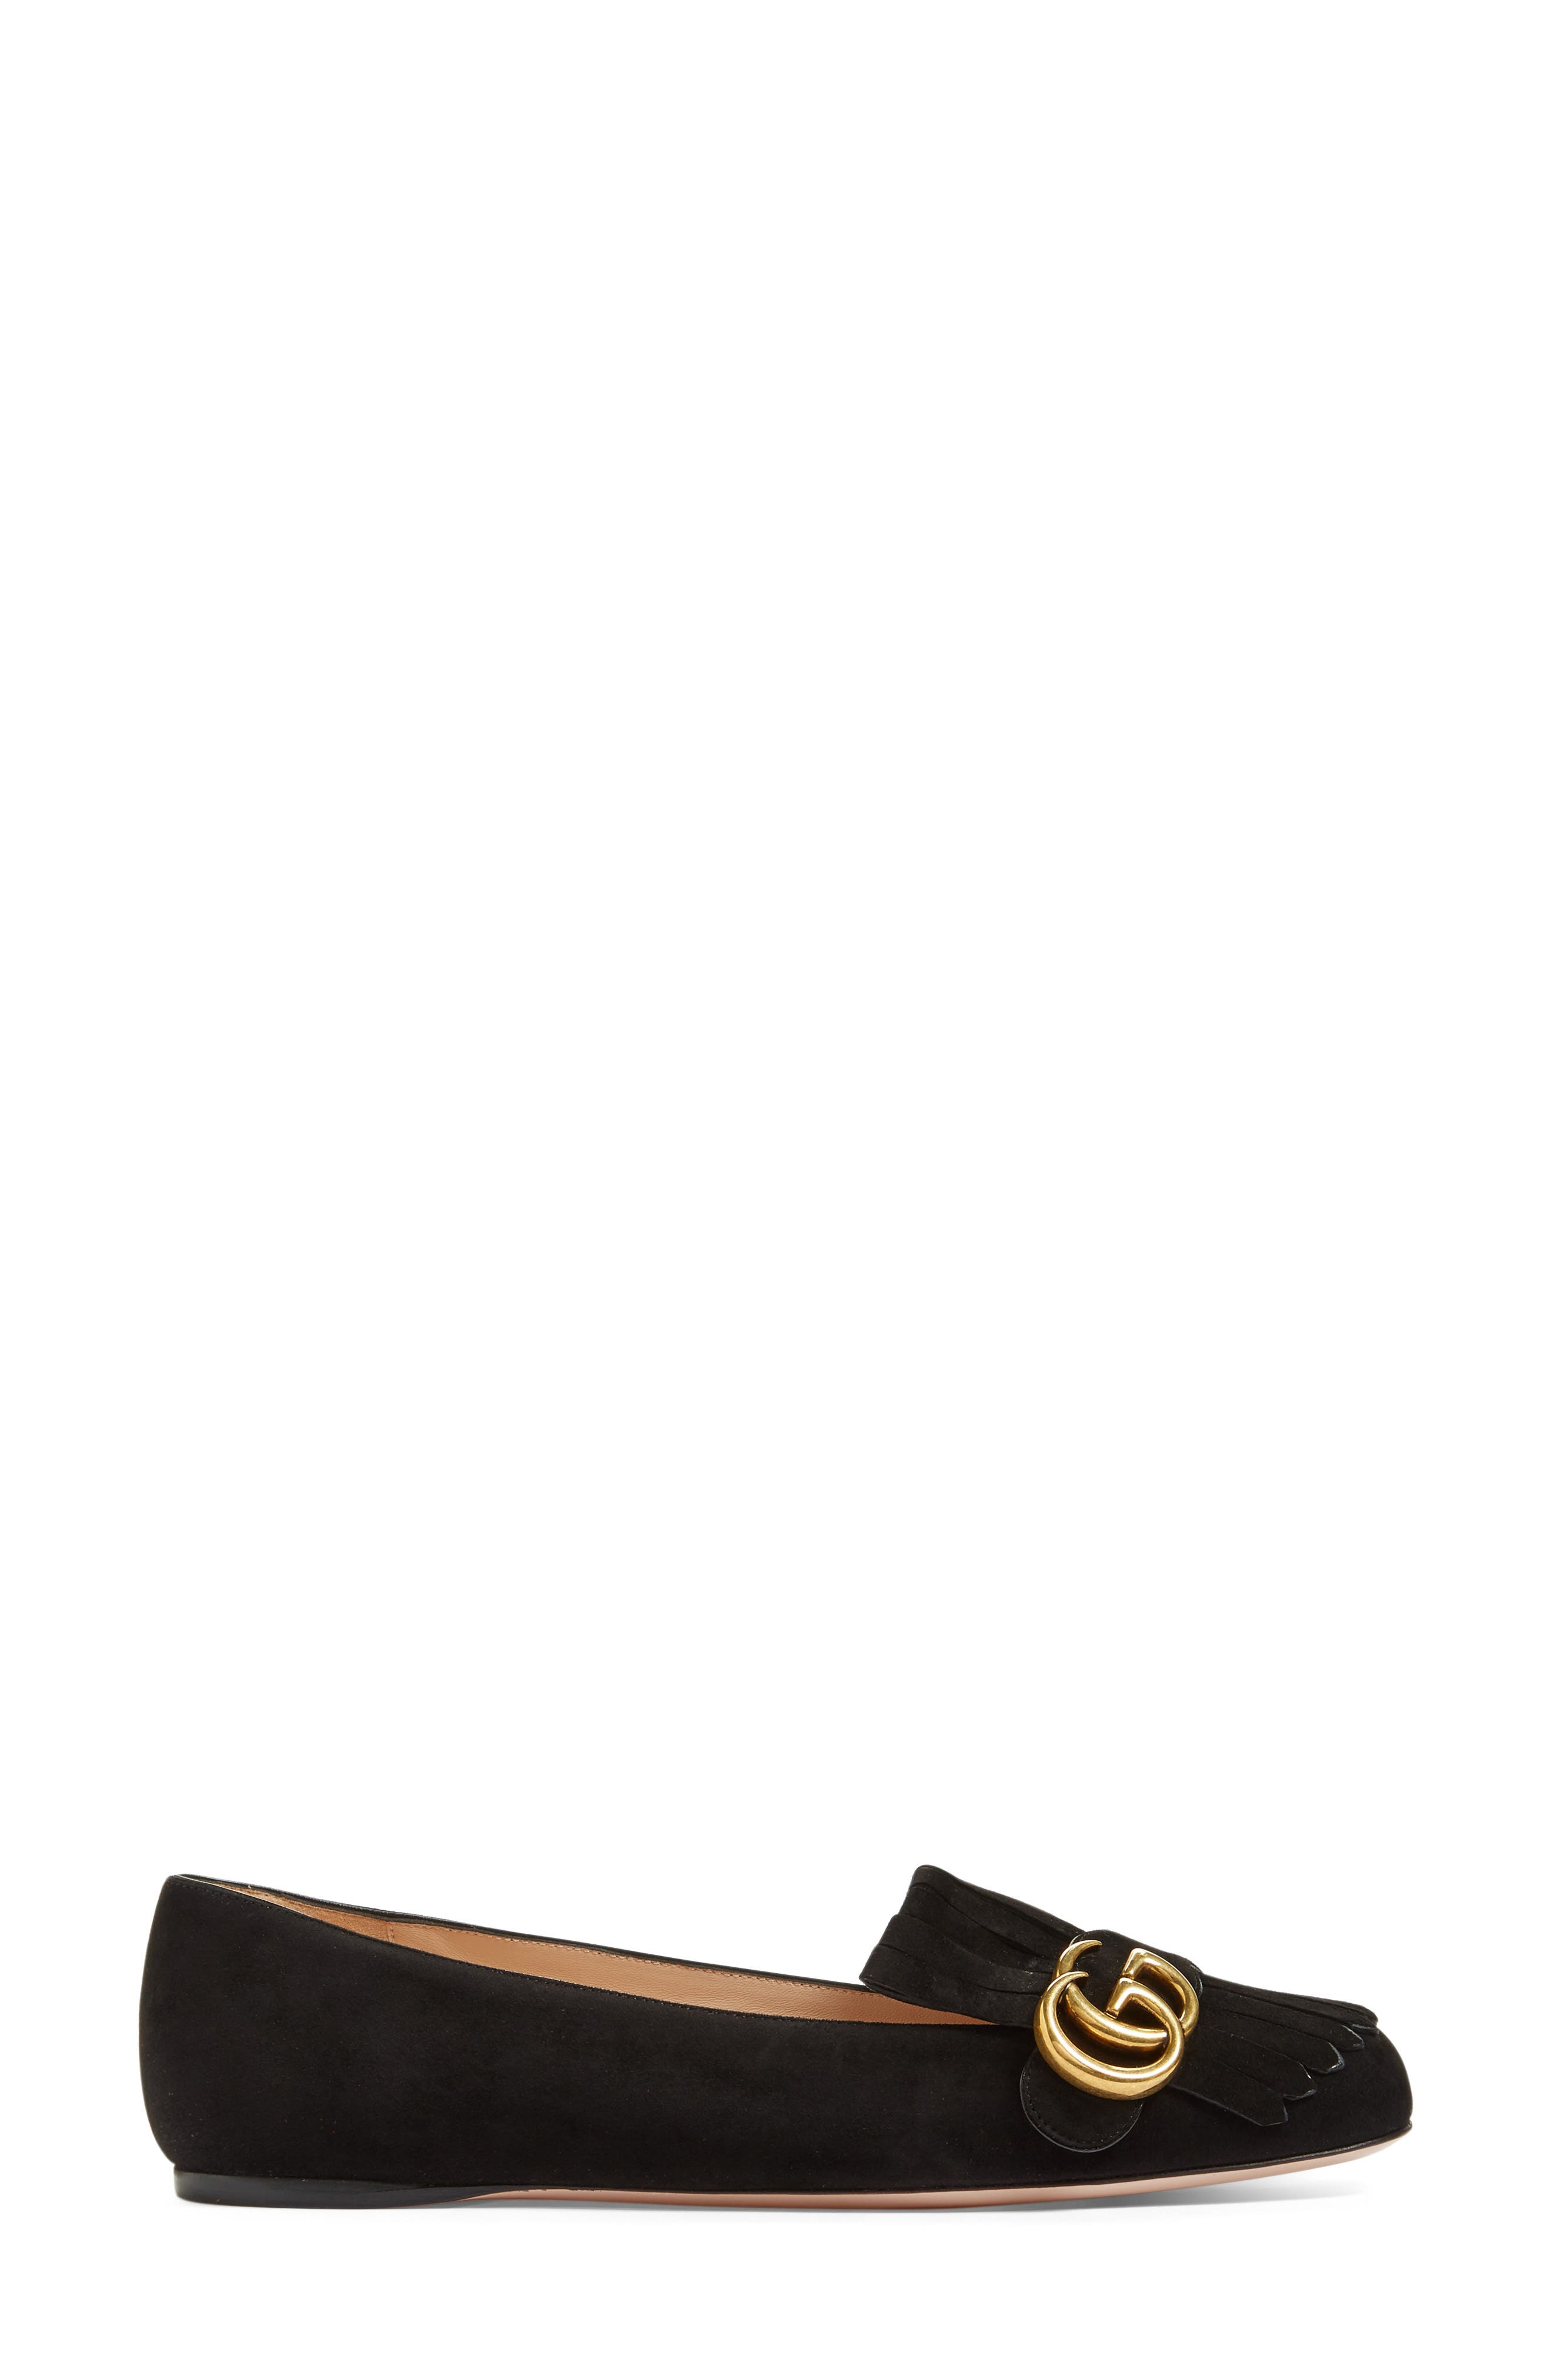 GUCCI, GG Marmont Fringe Flat, Alternate thumbnail 3, color, BLACK SUEDE